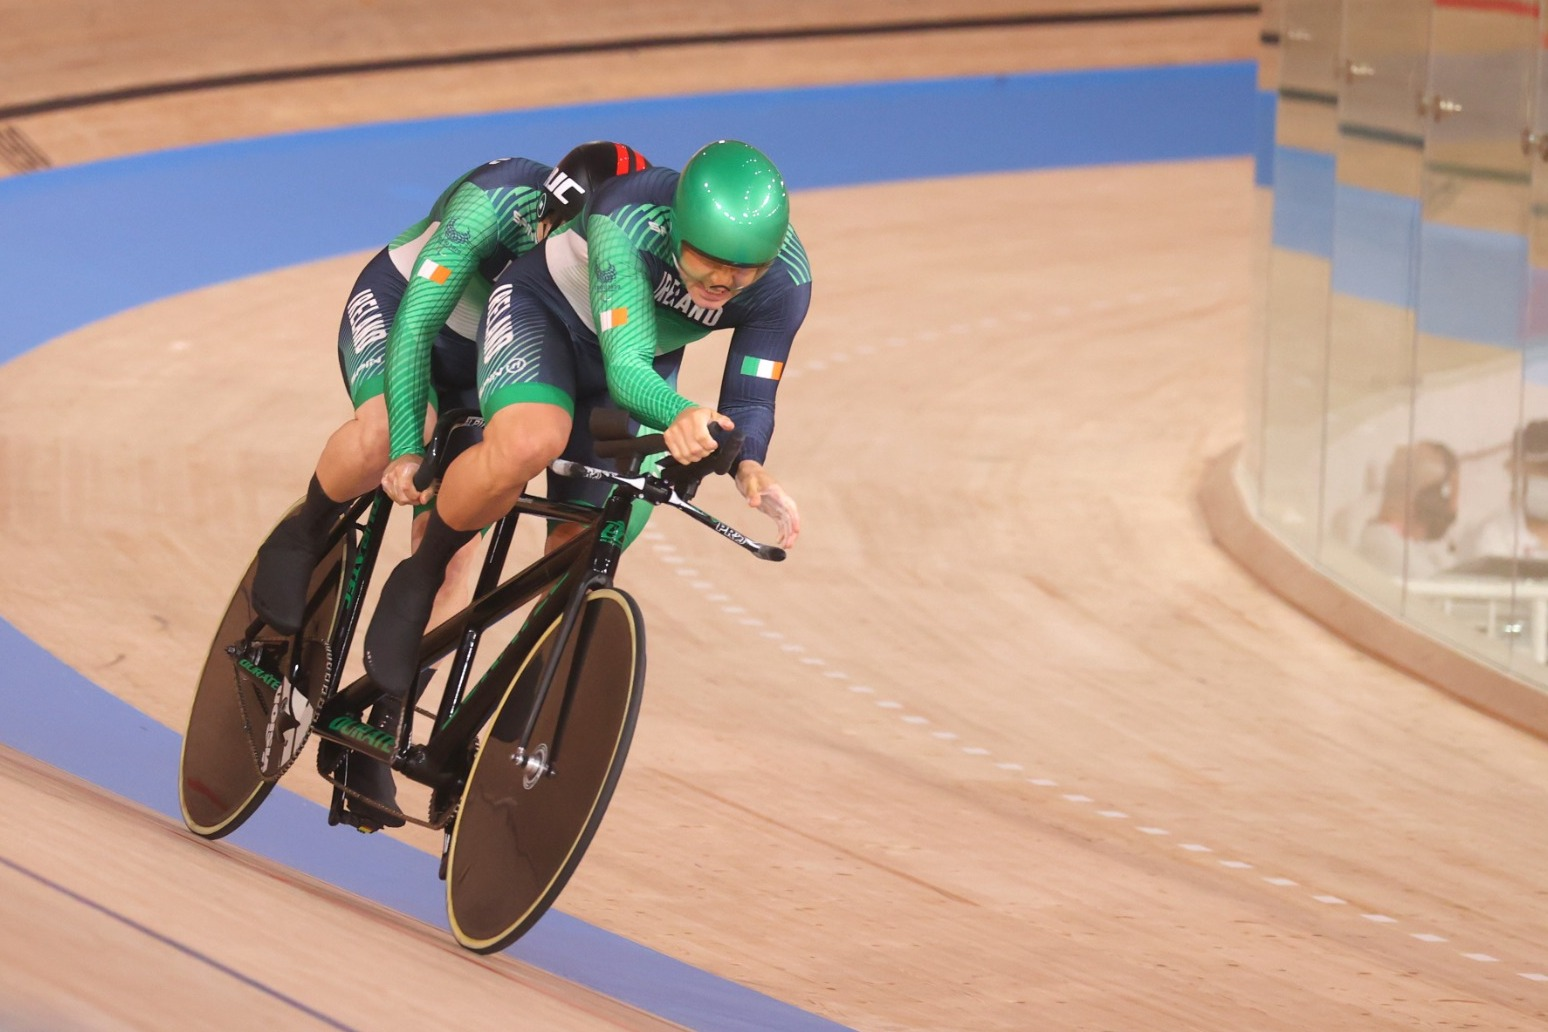 Gold runs in the Fachie family as husband and wife claim wins in Tokyo